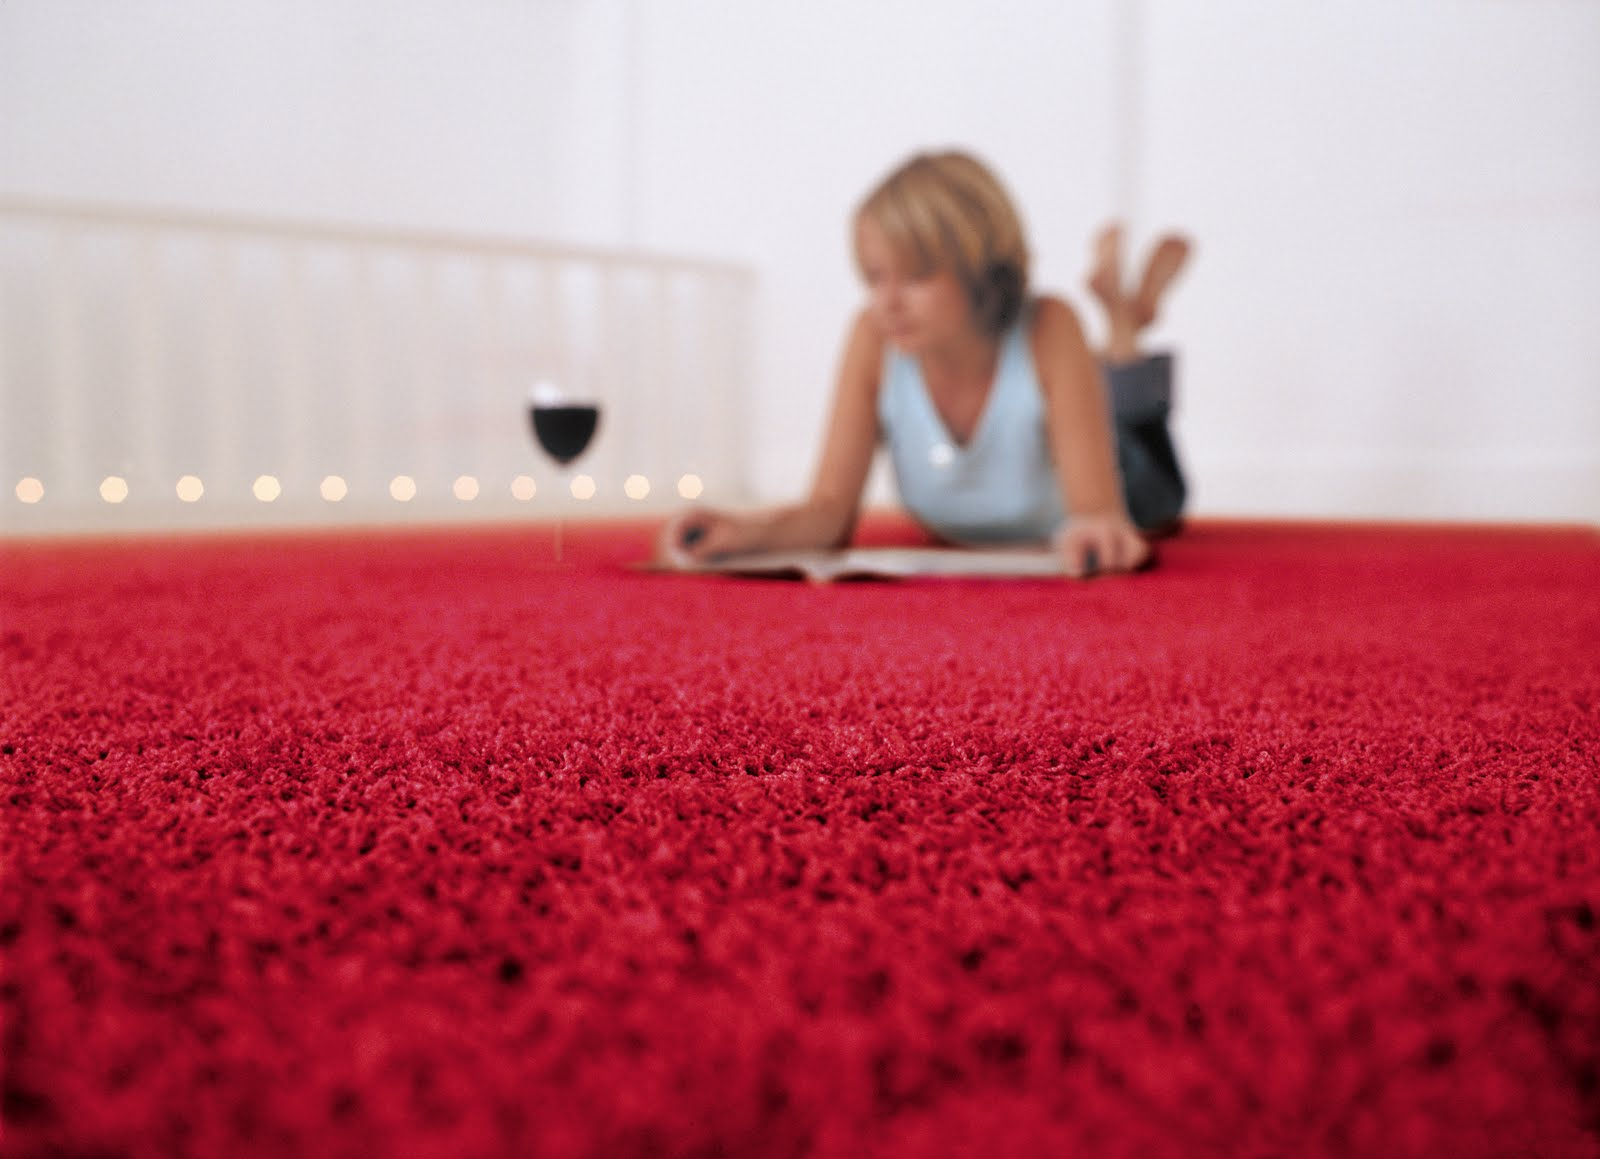 Carpet Cleaning Balham | MVIR Professional Cleaning Services